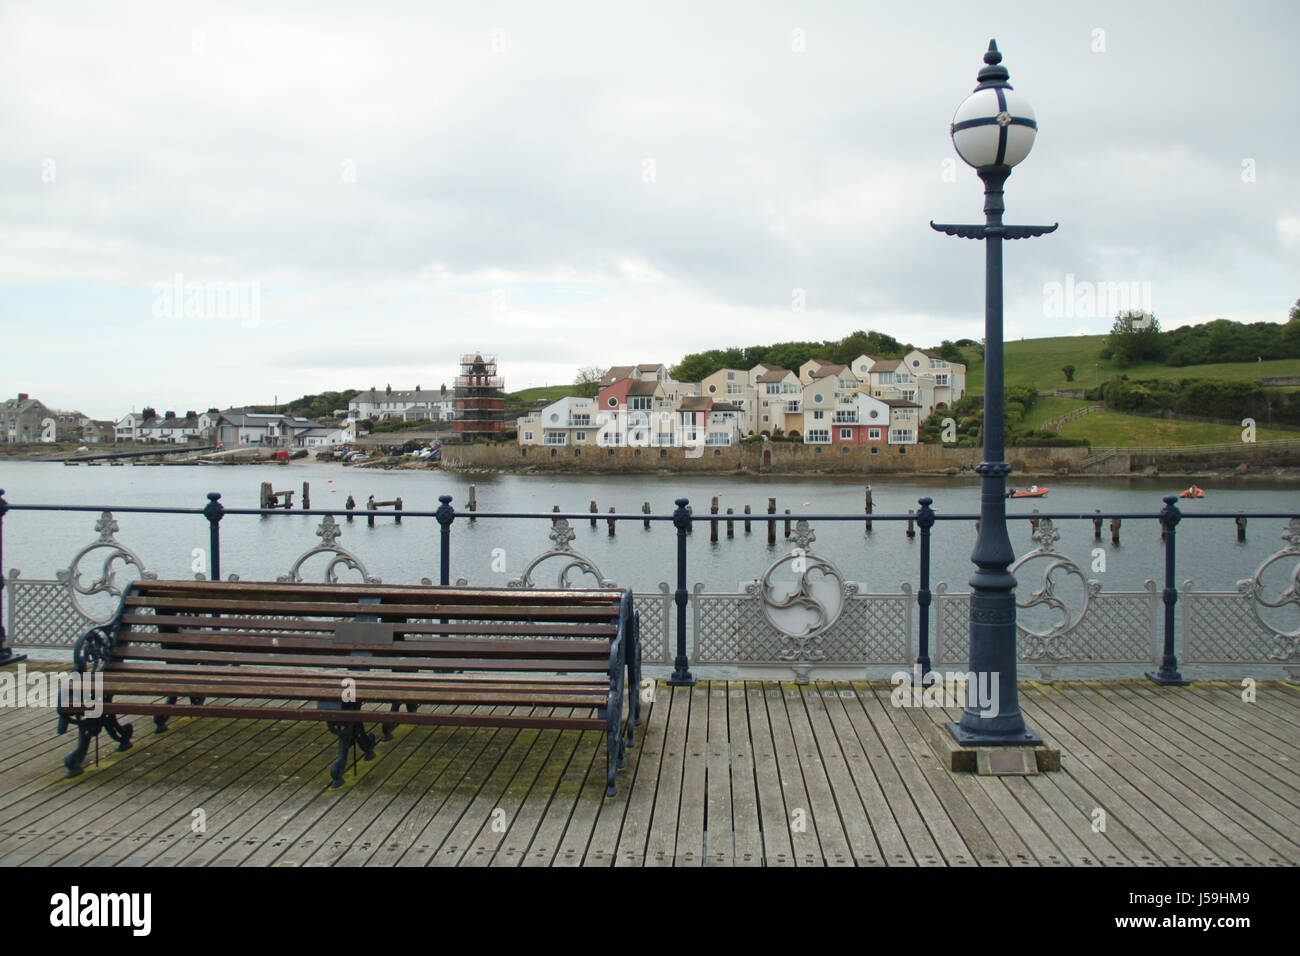 Swanage, UK -  12 May: A public bench on the Swanage pier. General view of the seaside town of Swanage in Dorset, - Stock Image